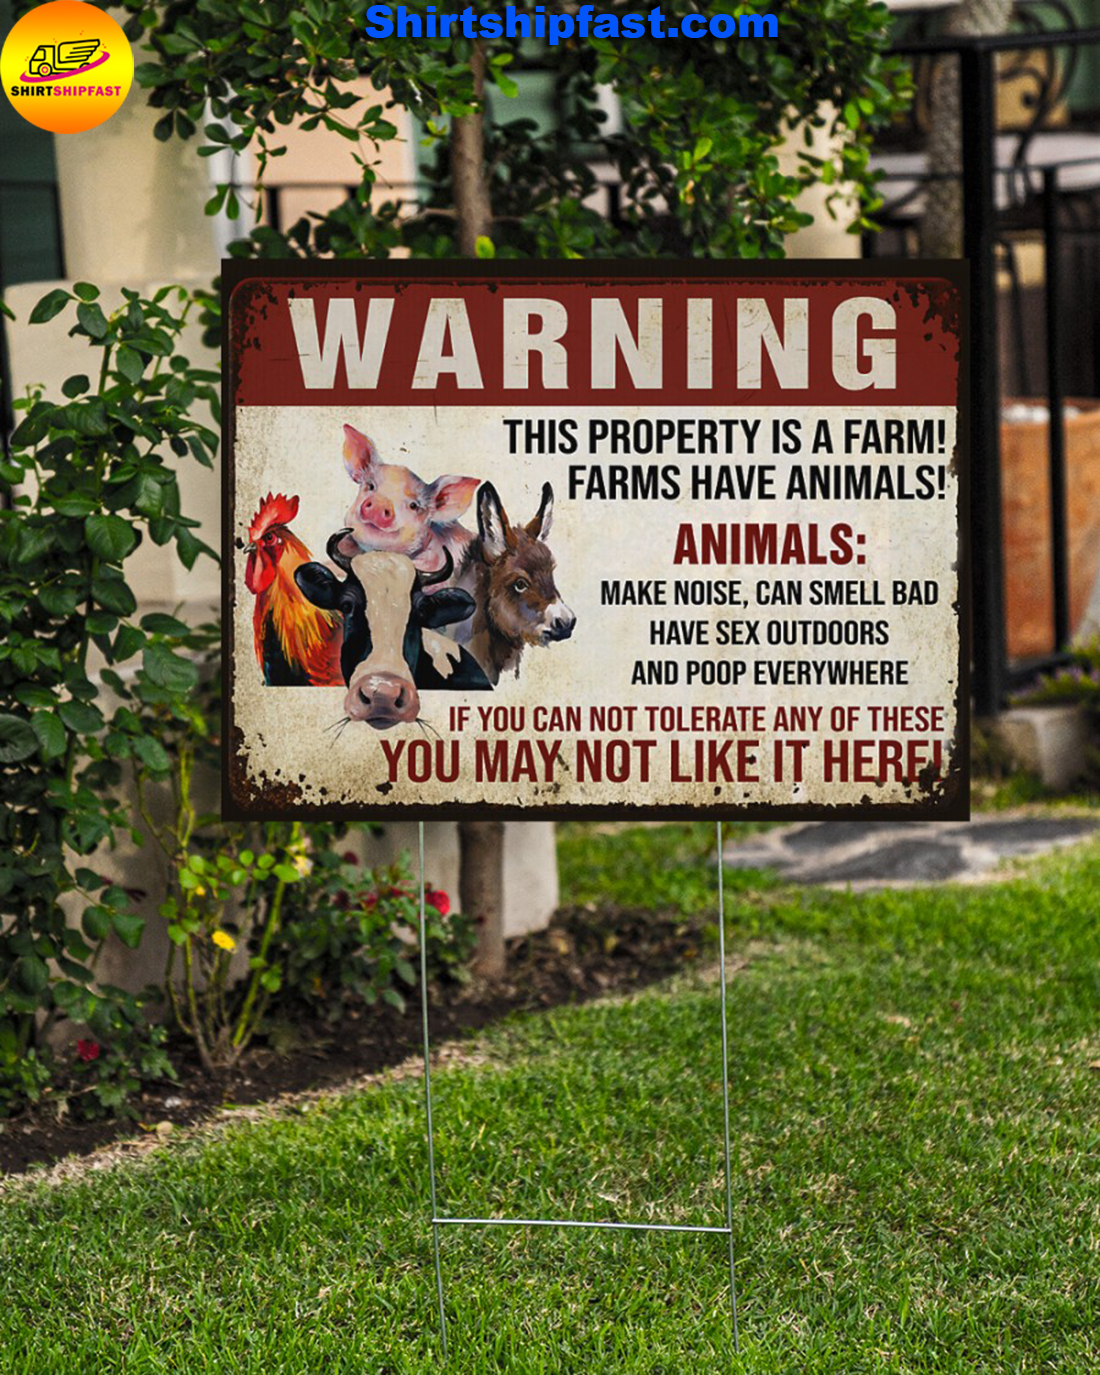 Animals Warninng this property is a farm yard signs - Picture 2